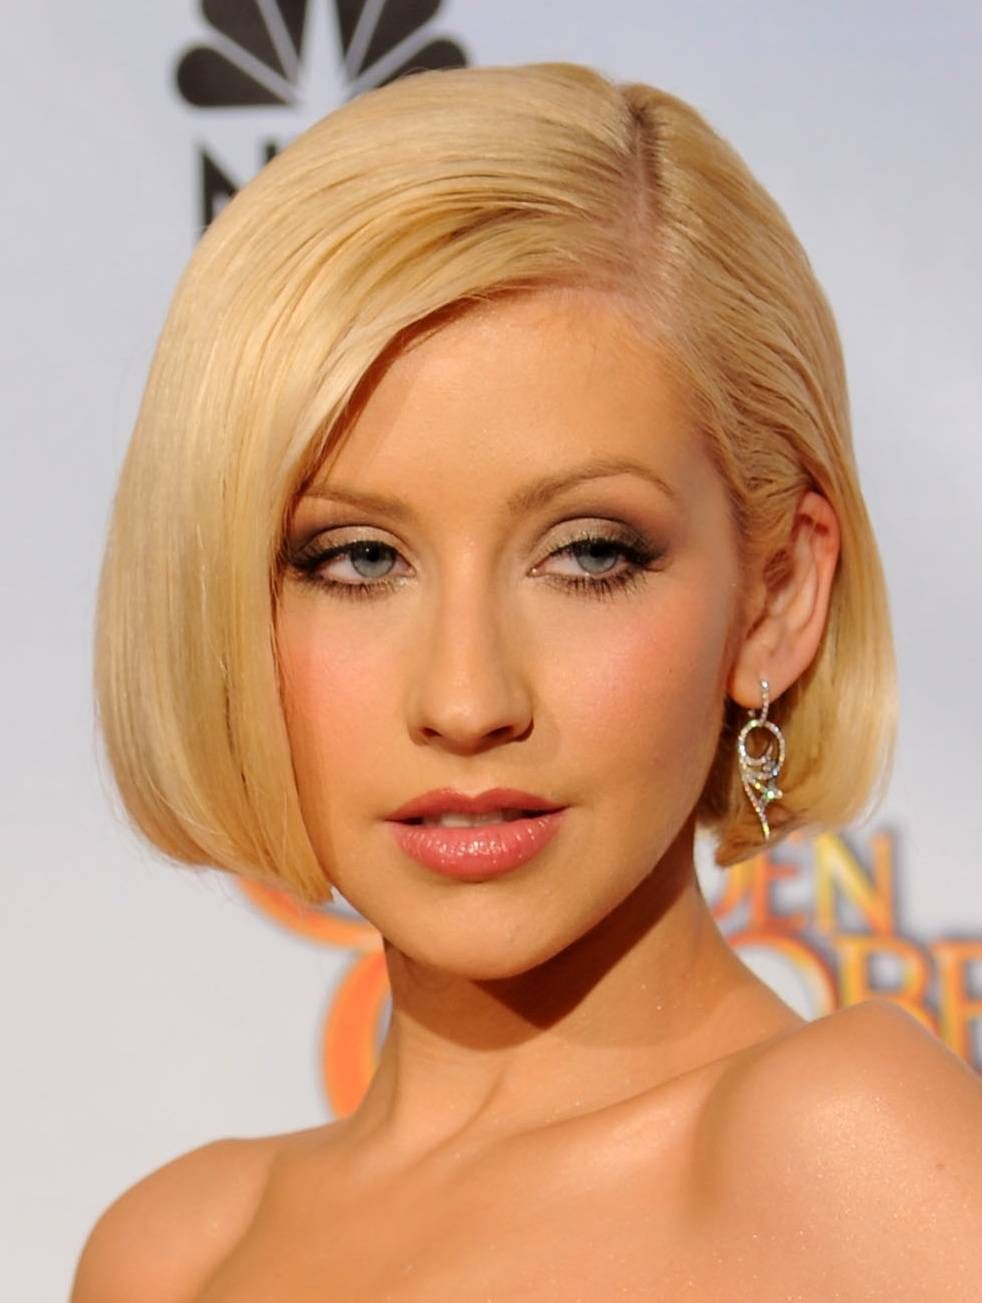 The perfect short hairstyles for oval faces simple hairstyle ideas